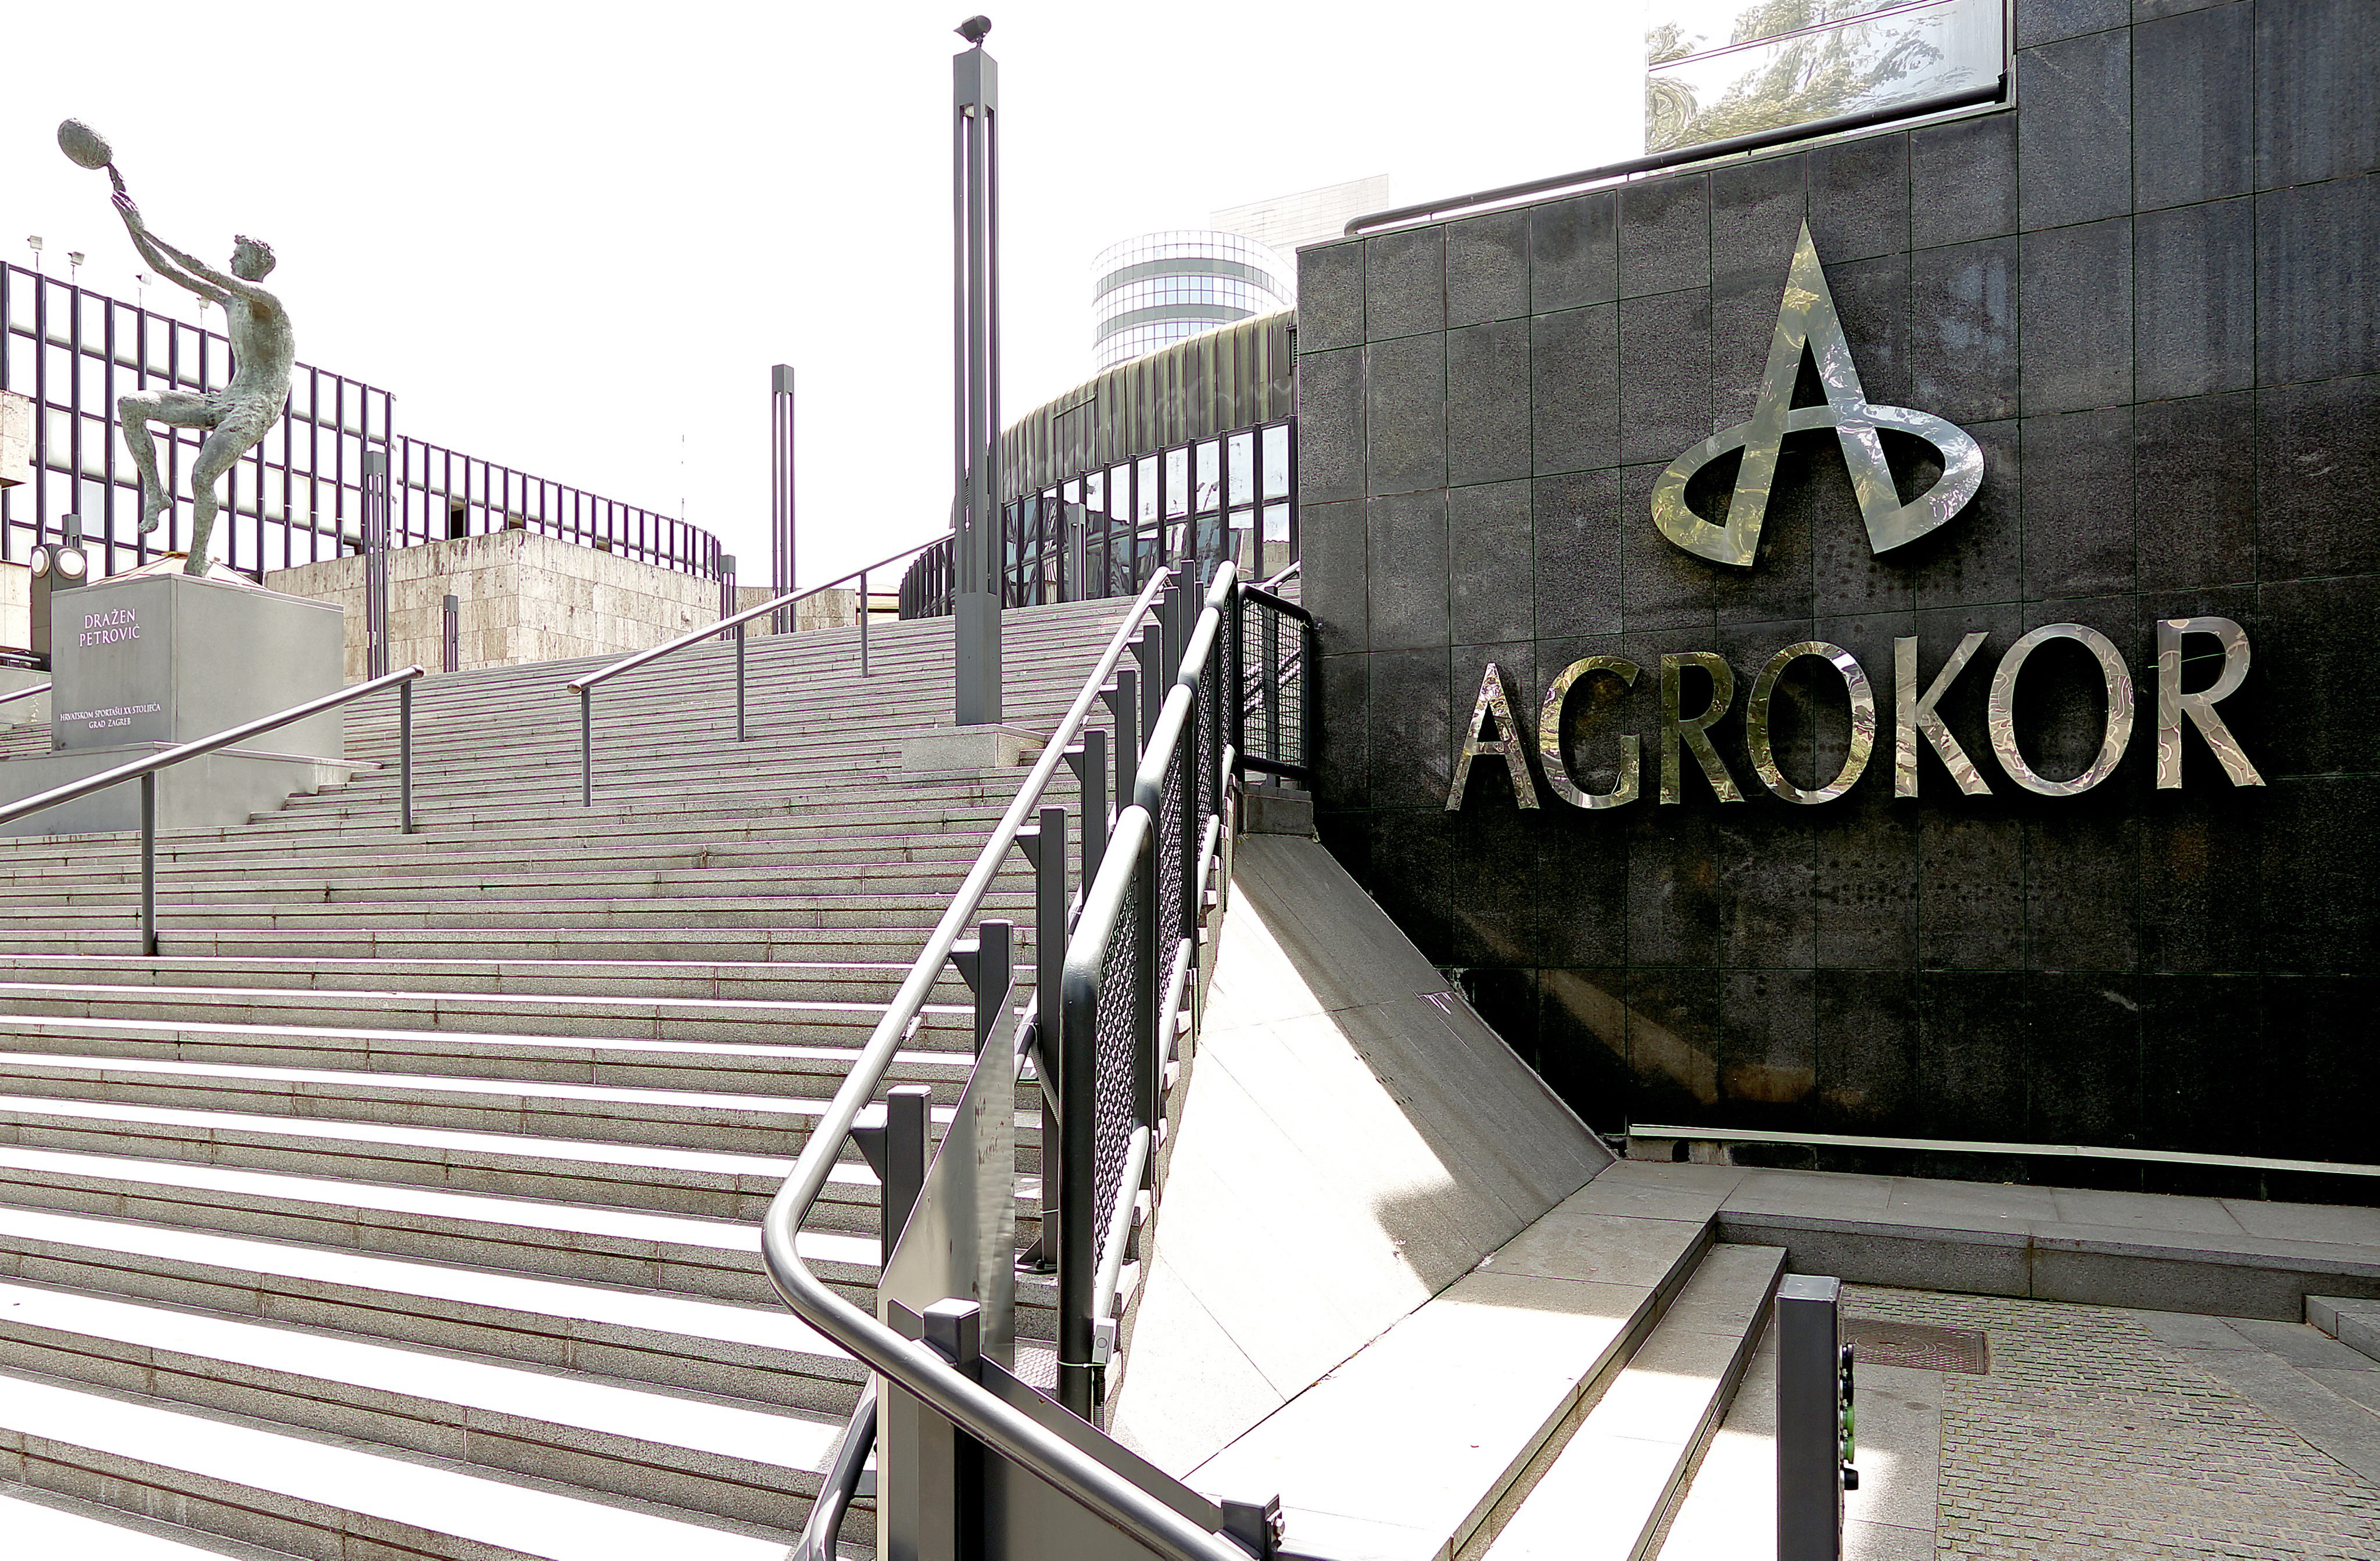 epa04282734 The logo of Croatian food group Agrokor at the headquarters in Zagreb, Croatia, 26 June 2014. The Croatian food group Agrokor finalized a deal to acquire a majority share in Slovenia's largest retailer Mercator for up to 550 million euros (750 million dollars), the STA news agency reported. Agrokor is to acquire a 53-per-ent stake from a consortium of shareholders, said the Pivovarna Lasko beverages group, the largest shareholder in the consortium. The takeover was agreed a year ago, but was plagued by financing problems.  EPA/ANTONIO BAT